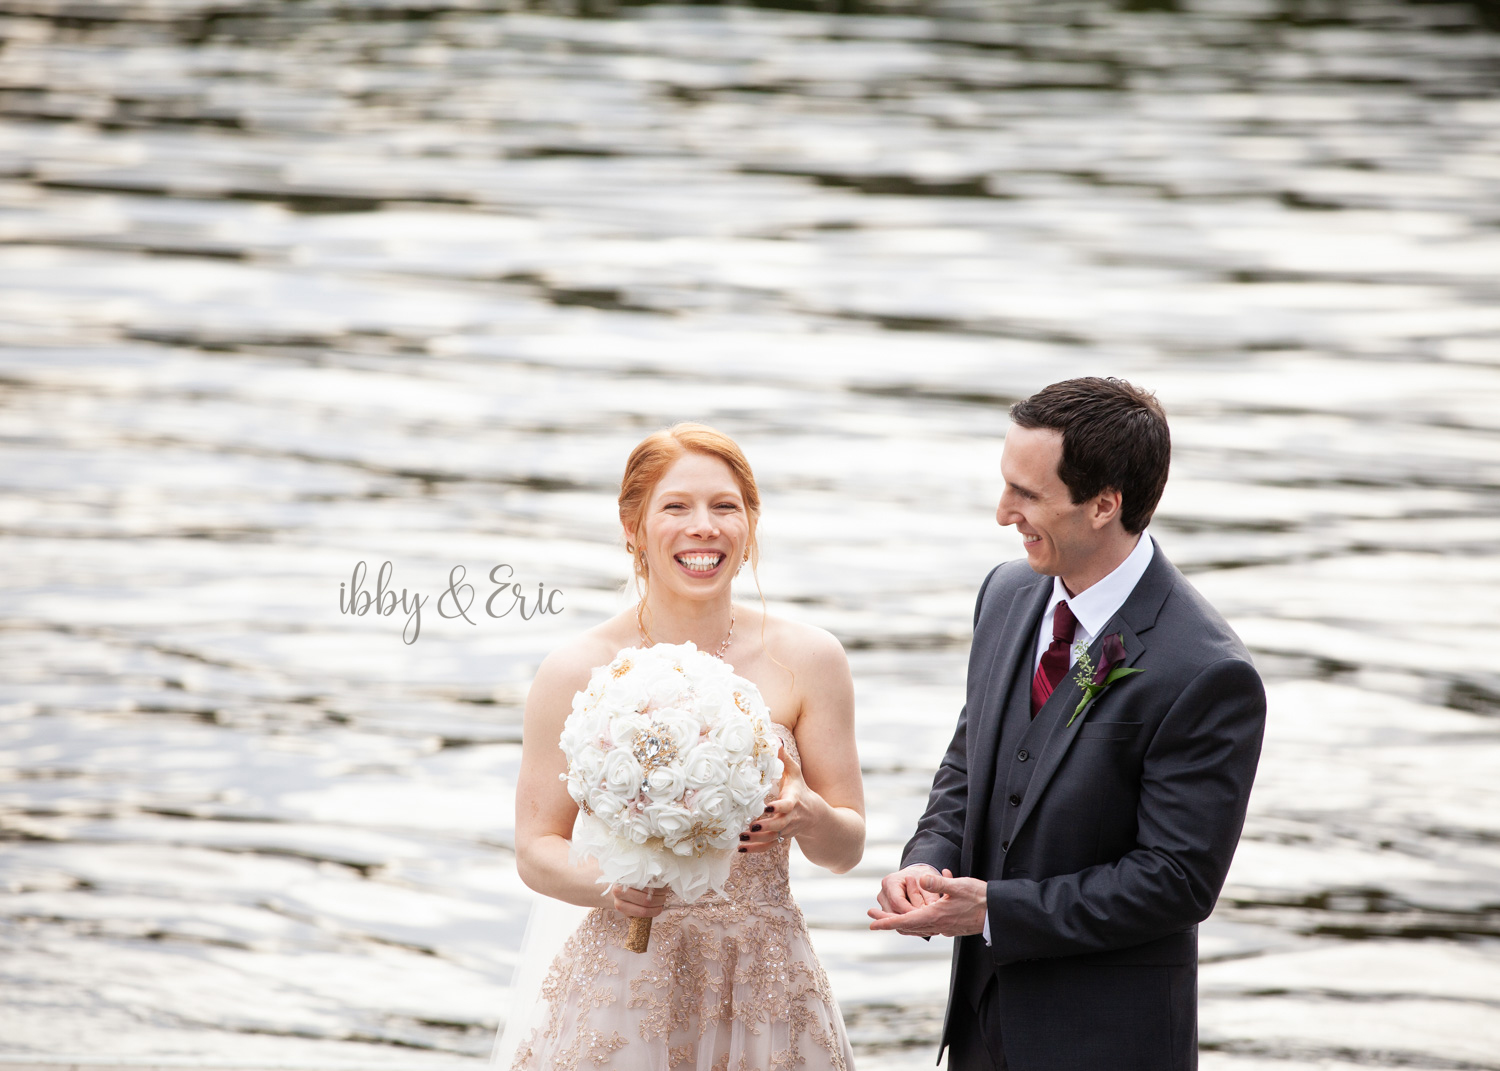 Bride and groom laugh and smile to each other while standing in front of the Connecticut River.